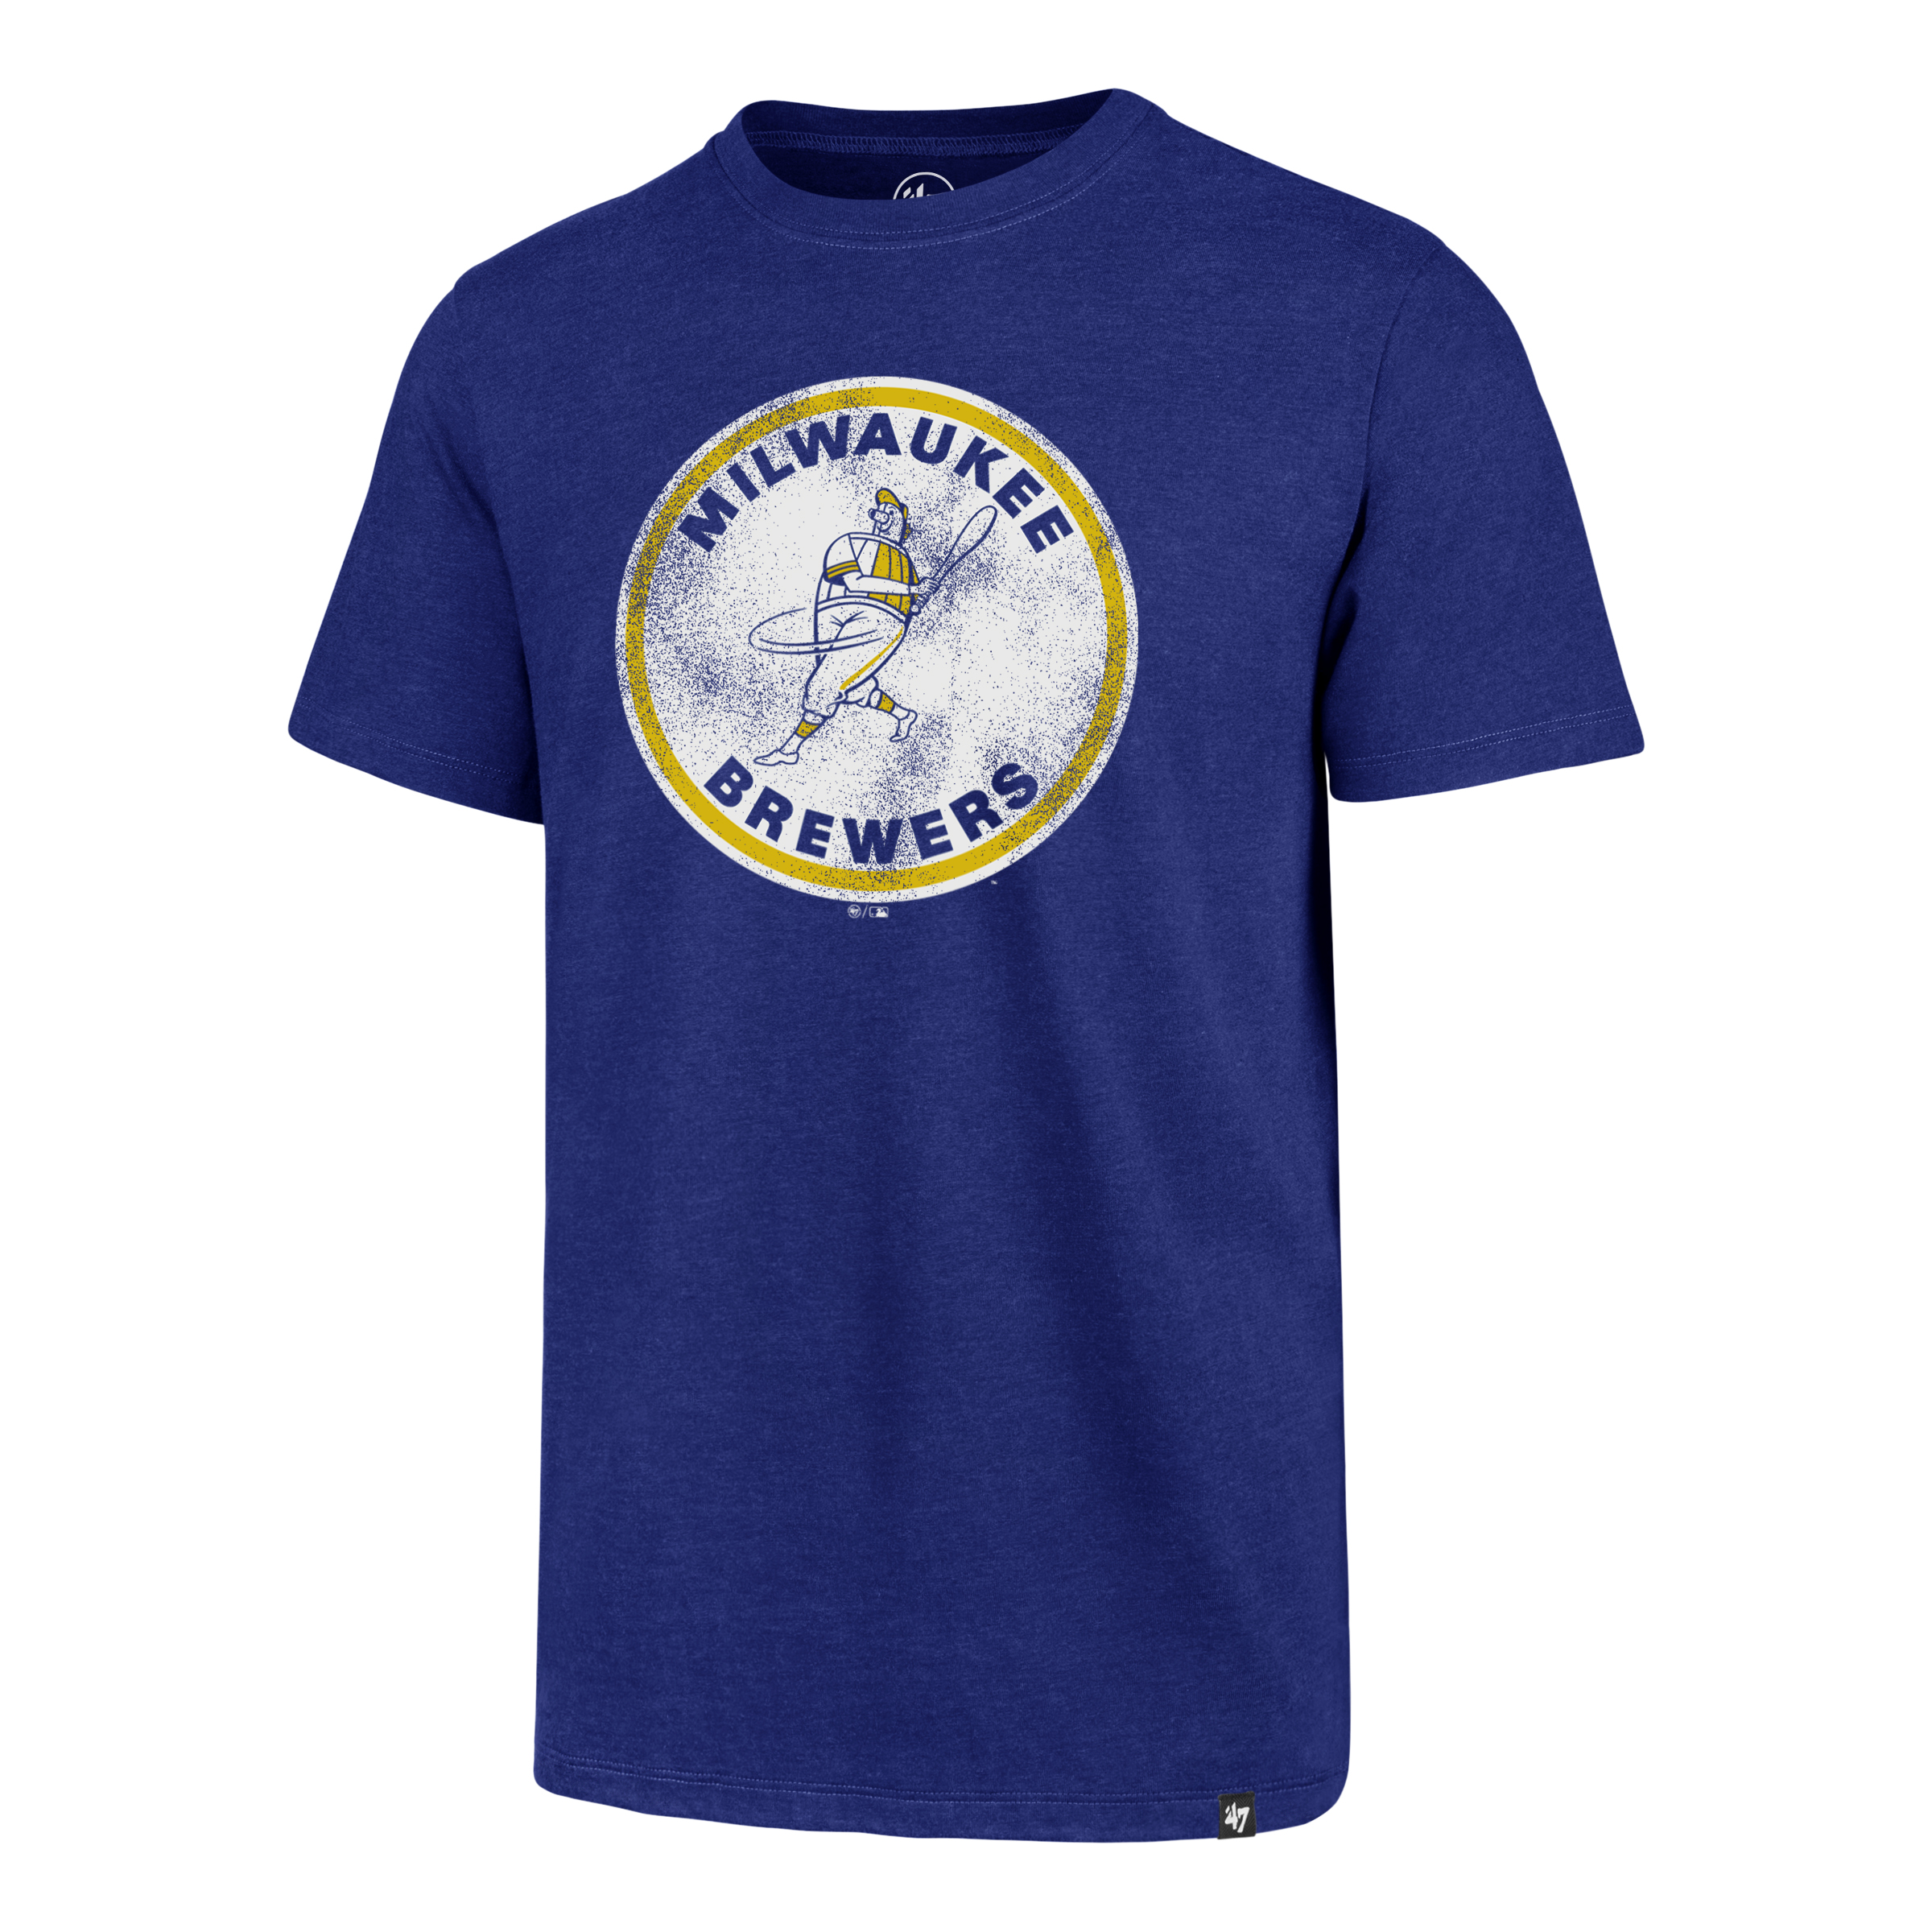 MILWAUKEE BREWERS COOPERSTOWN, Royal Bl,Sapphire,Marine, swatch